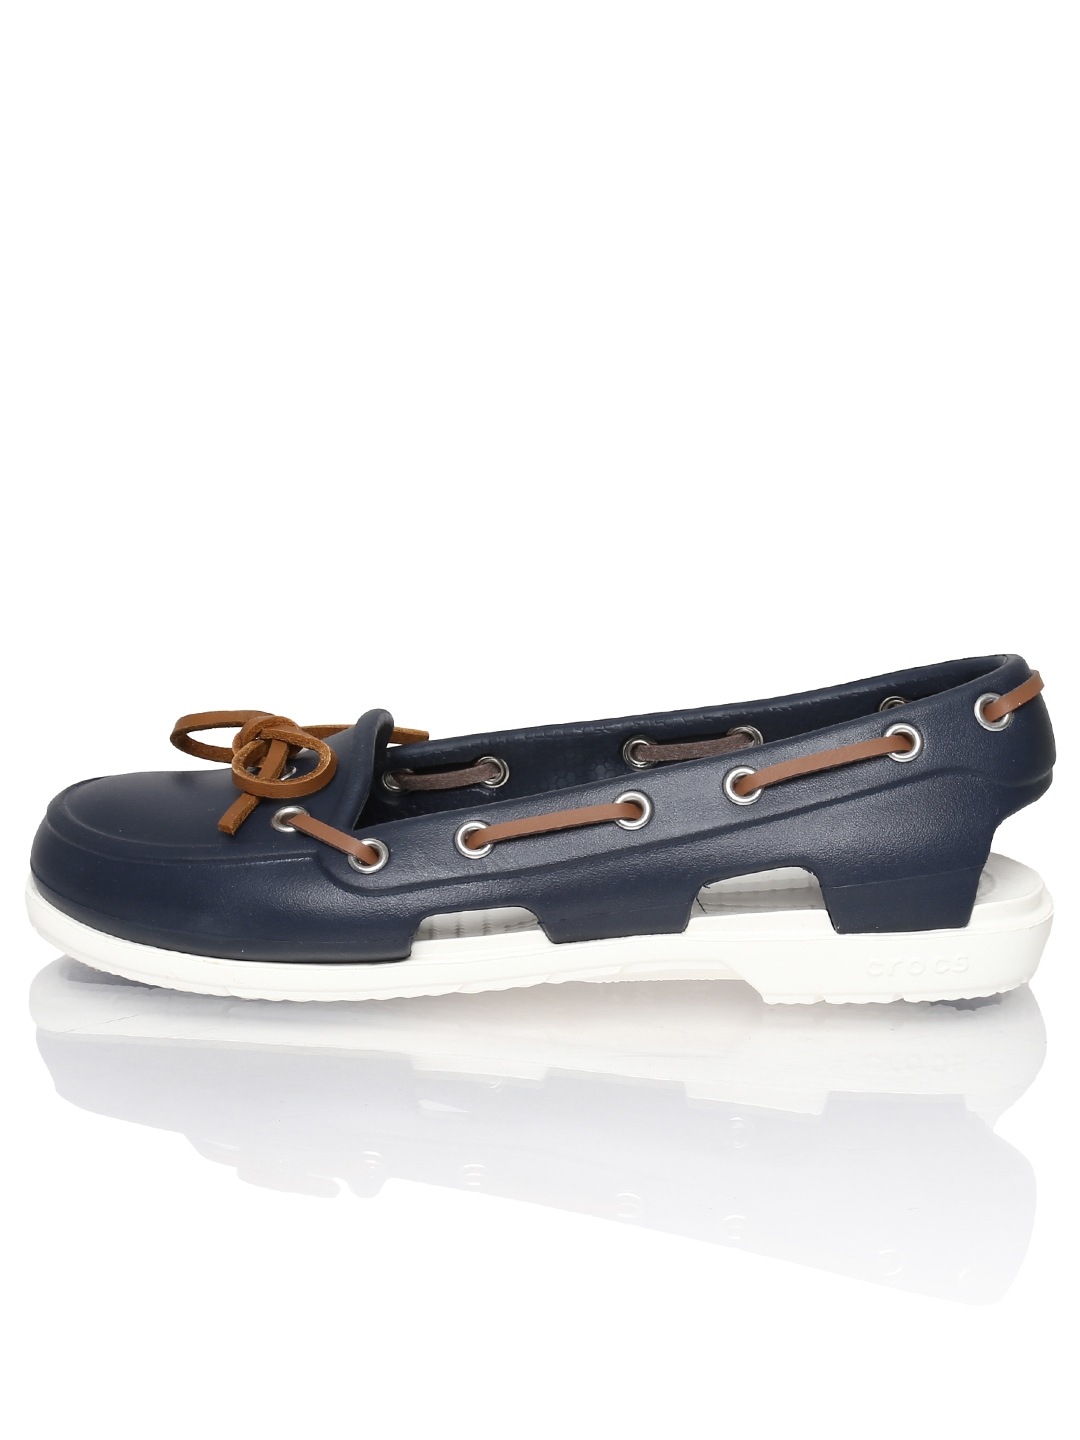 SO Boat Shoes - Women with sequins, navy and white stripes   Boat